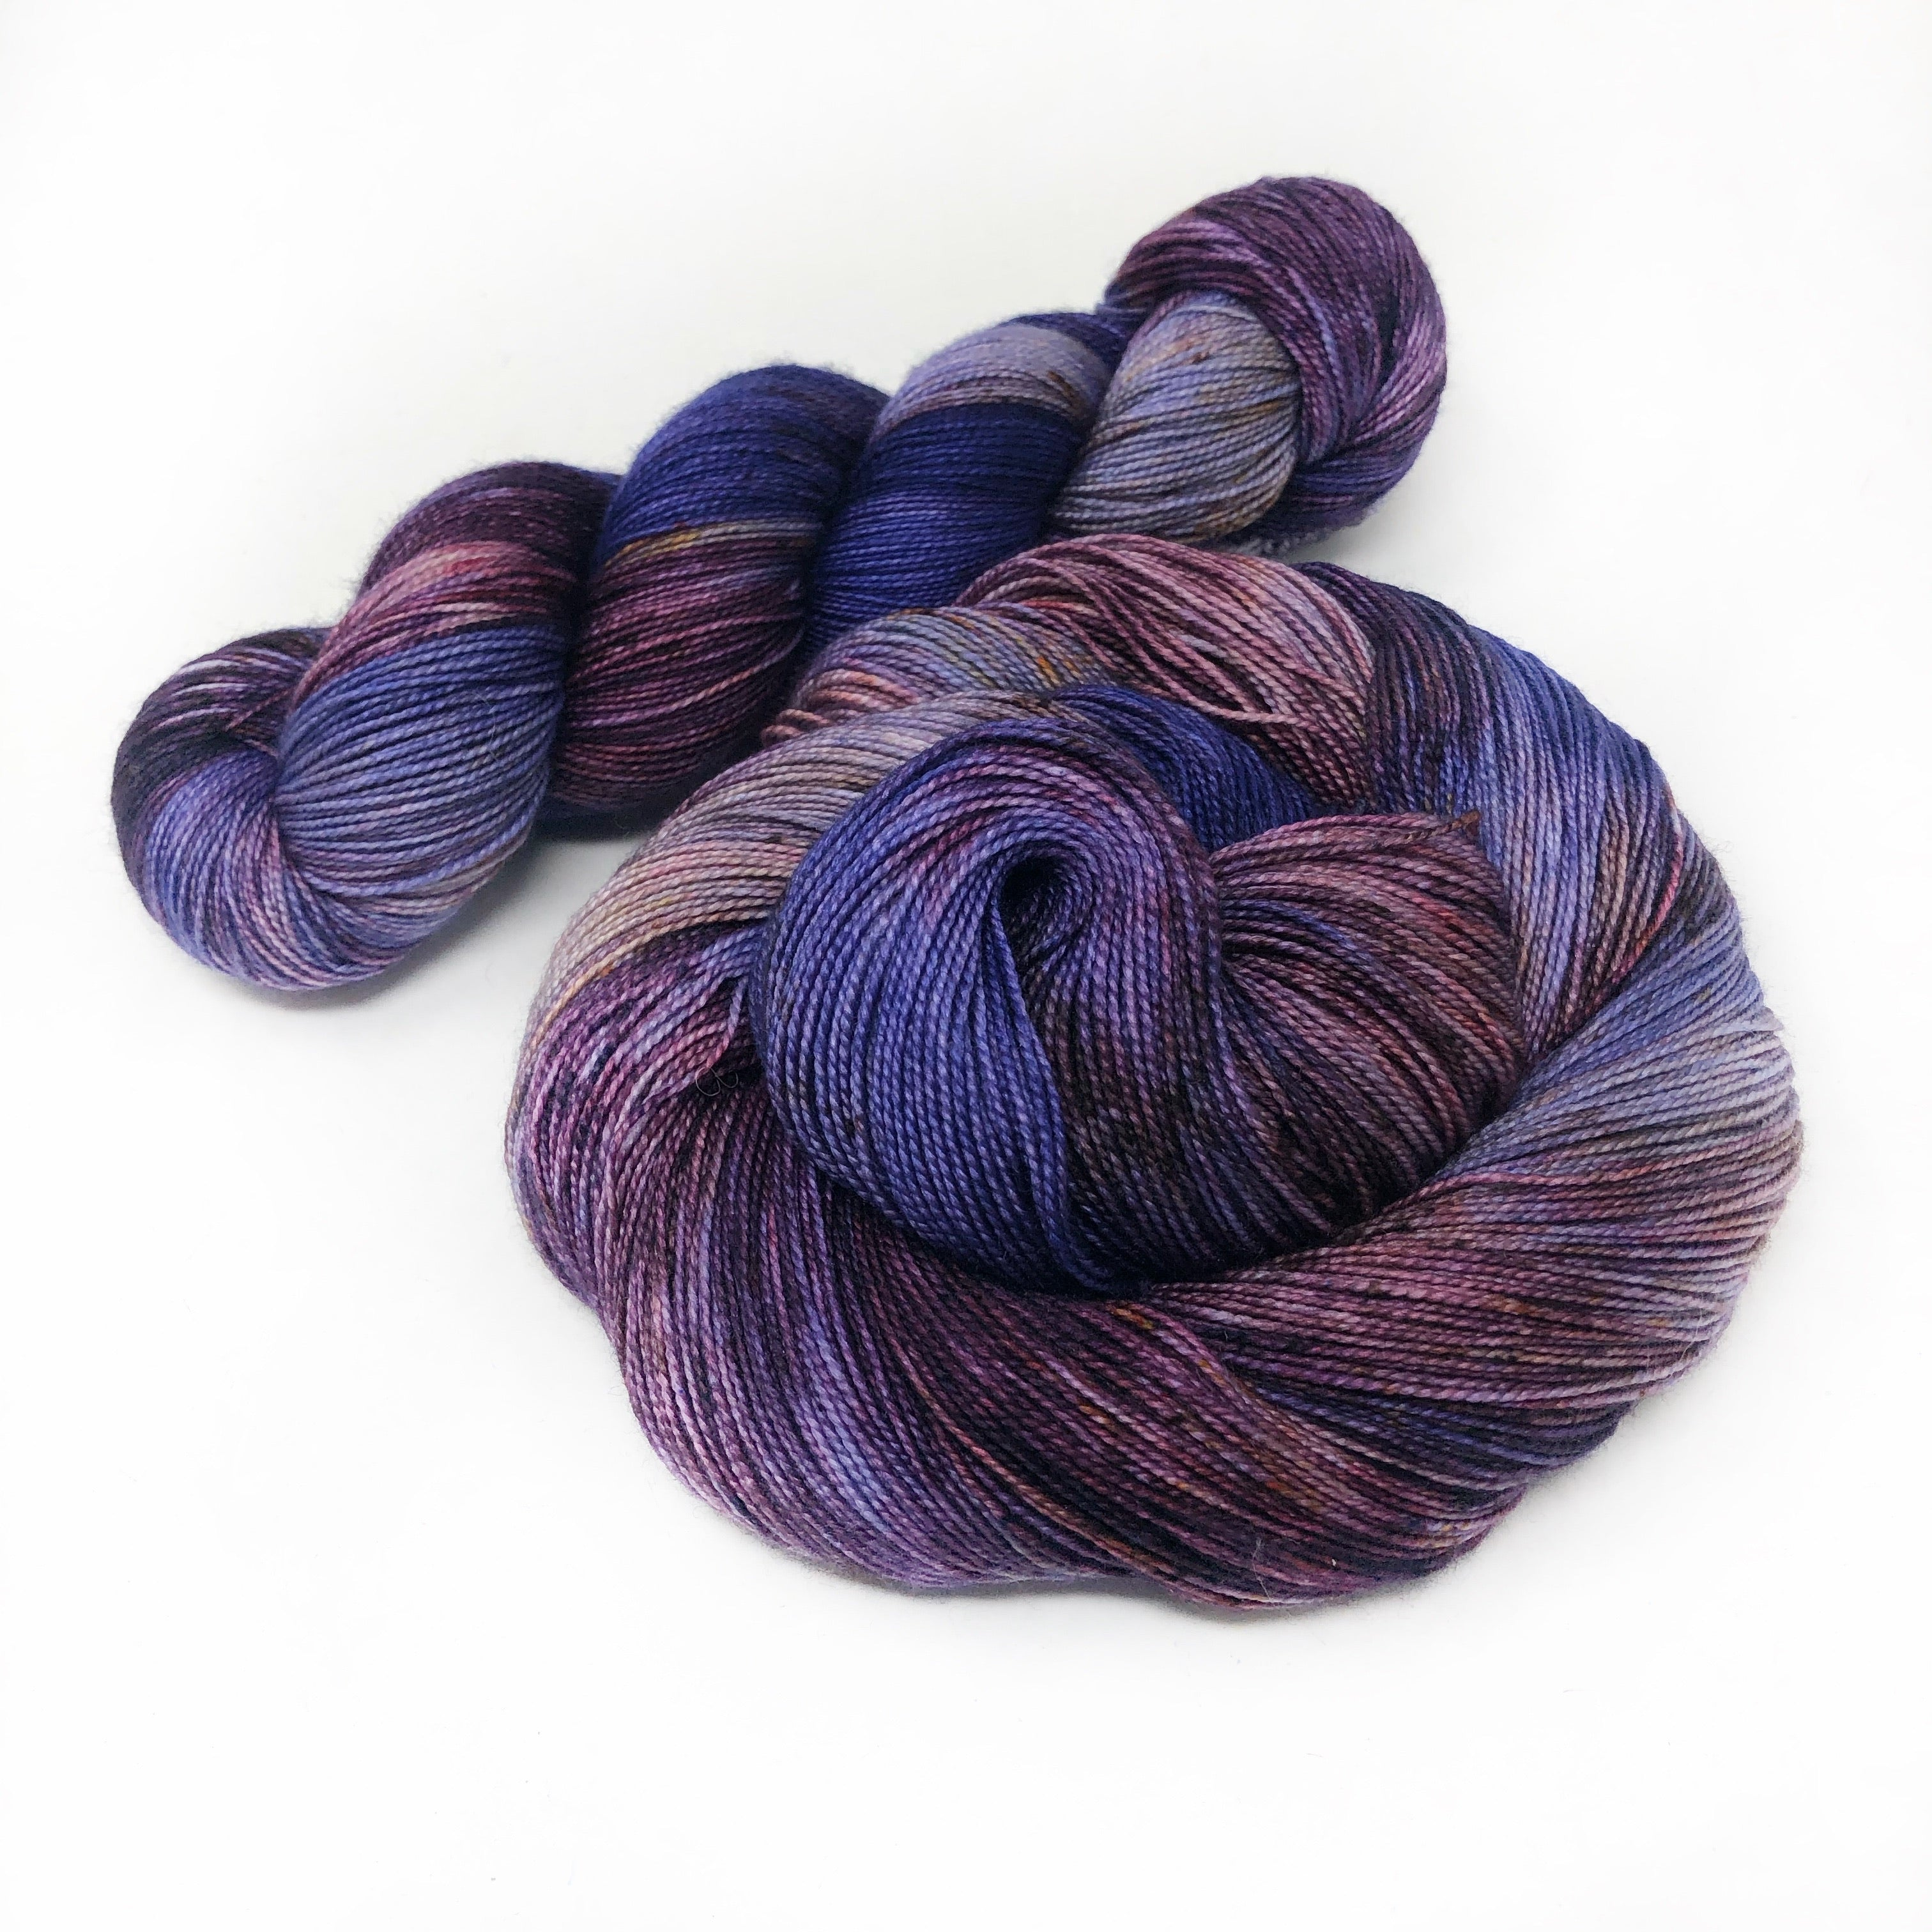 Wise Woman - Shawl length skein - 600 yards